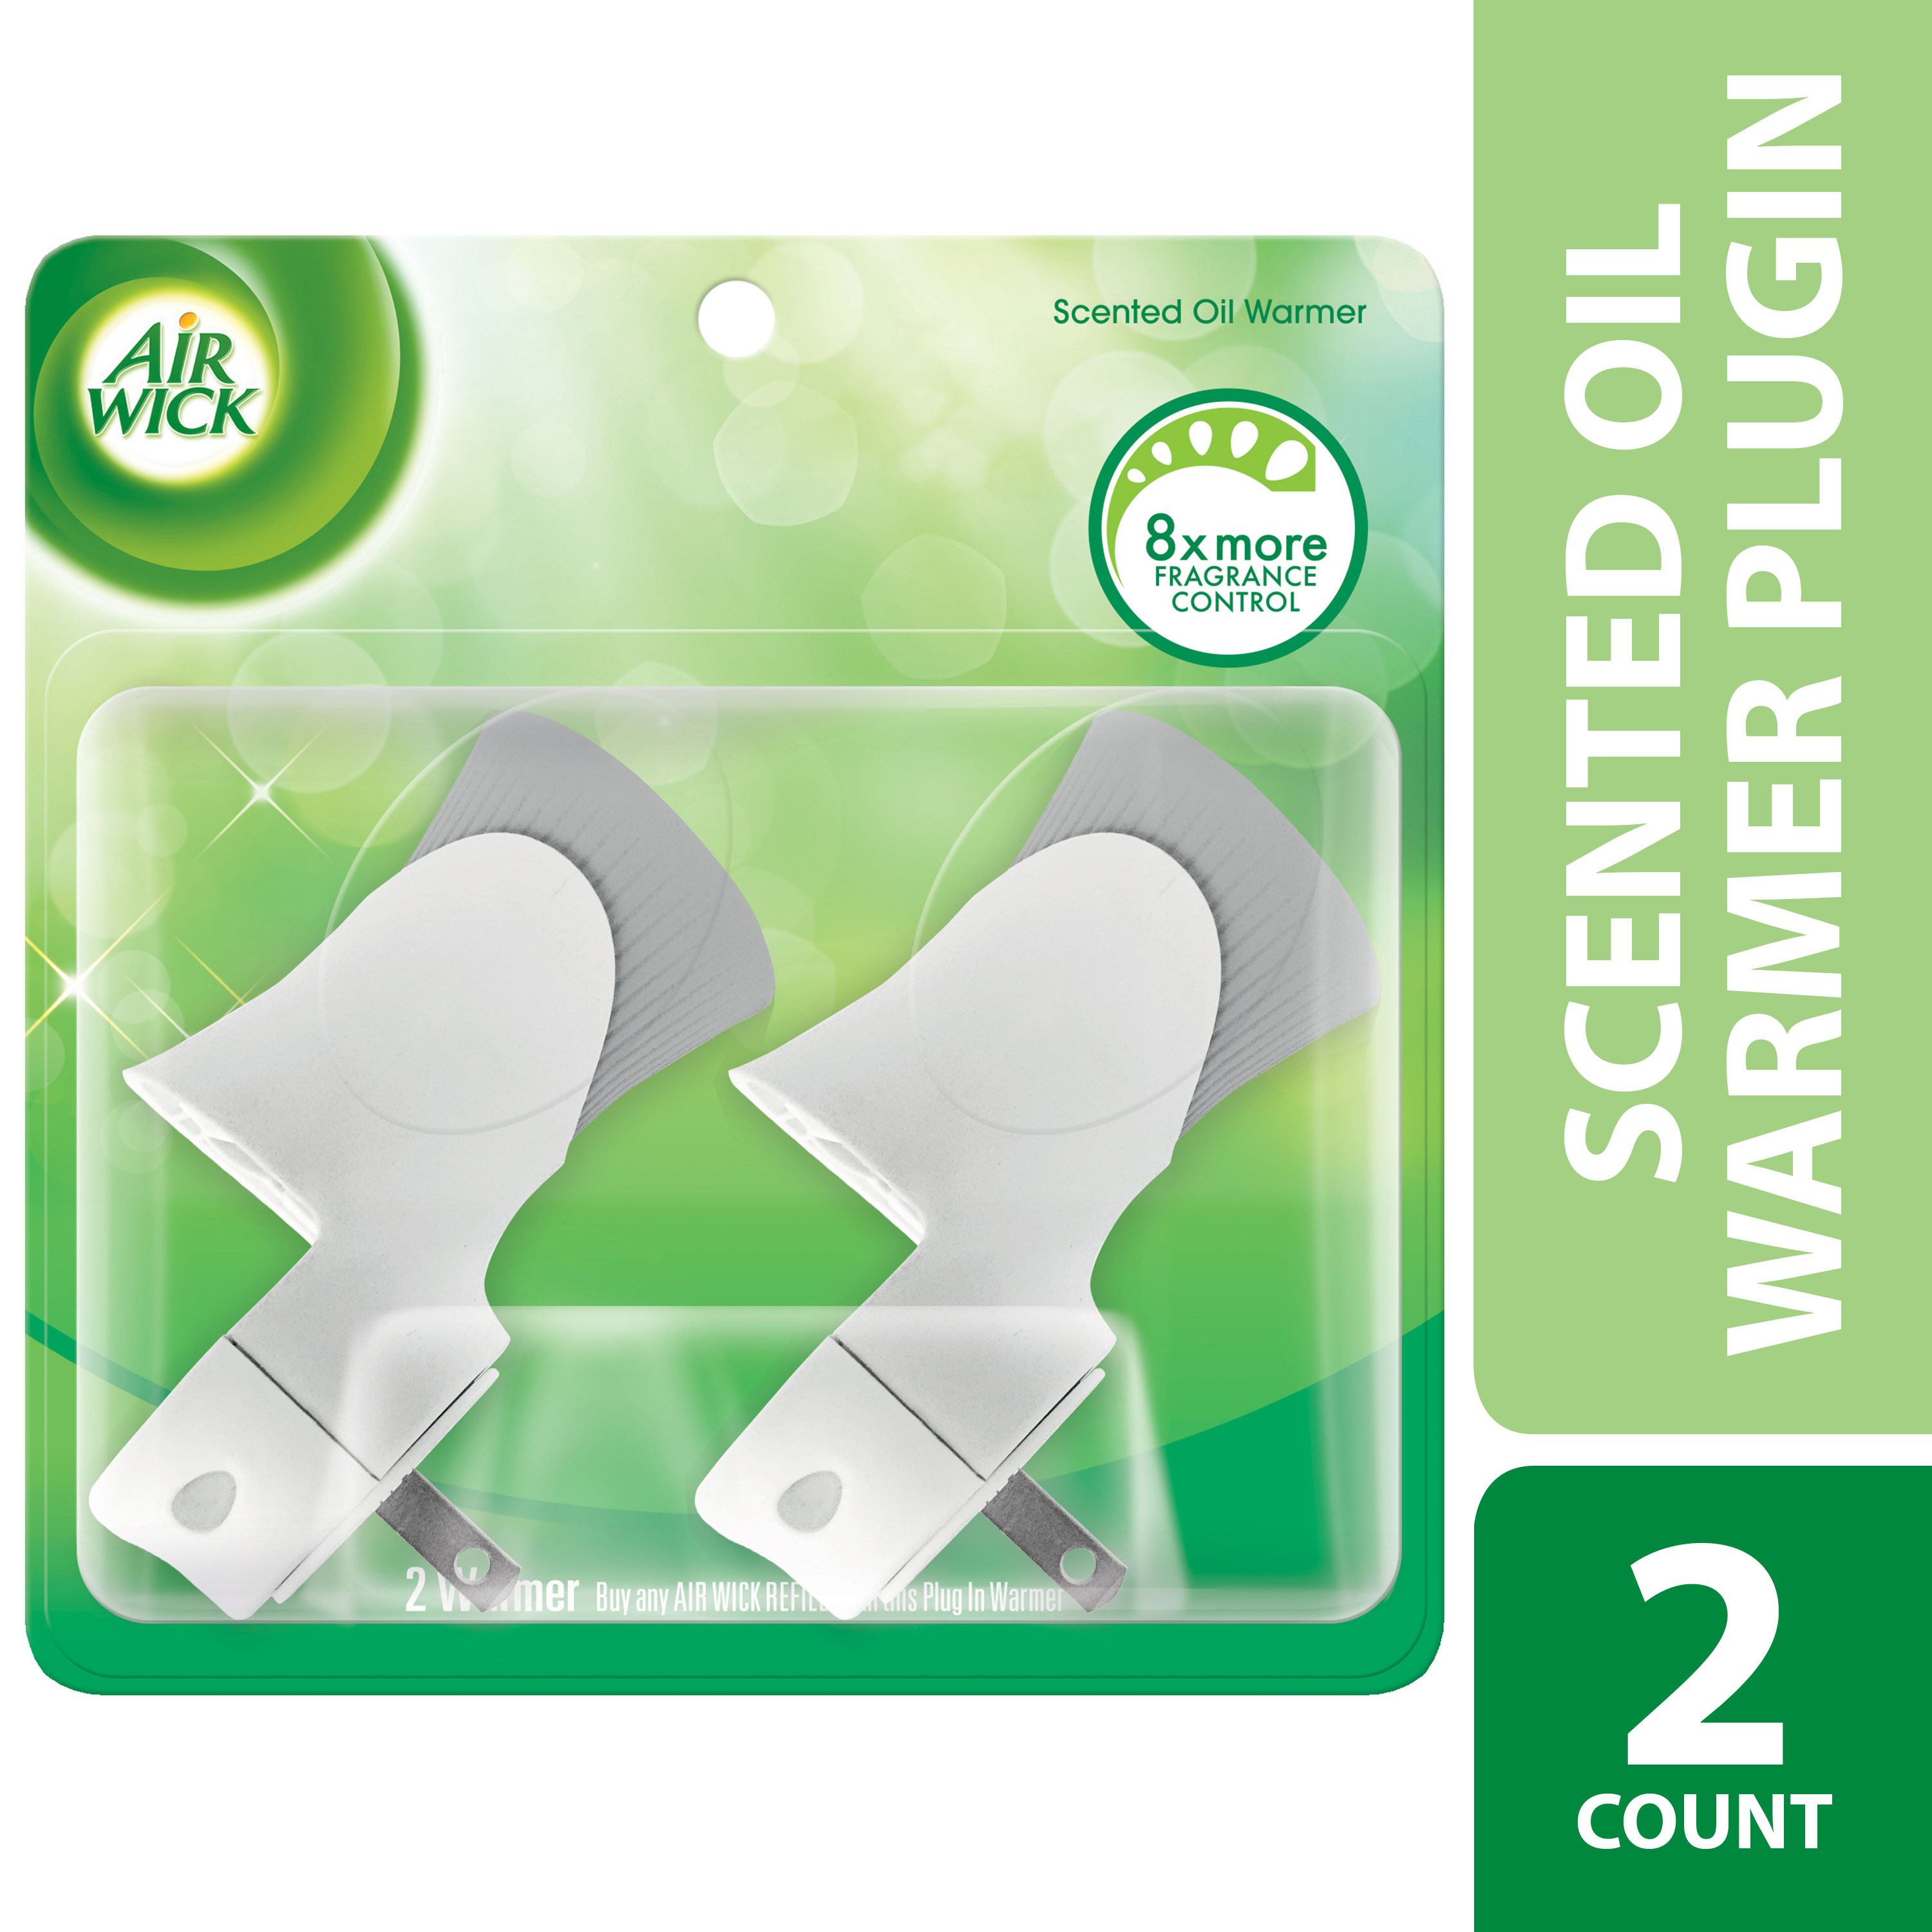 Air Wick Scented Oil Warmer Plugin Air Freshener, White, 2ct